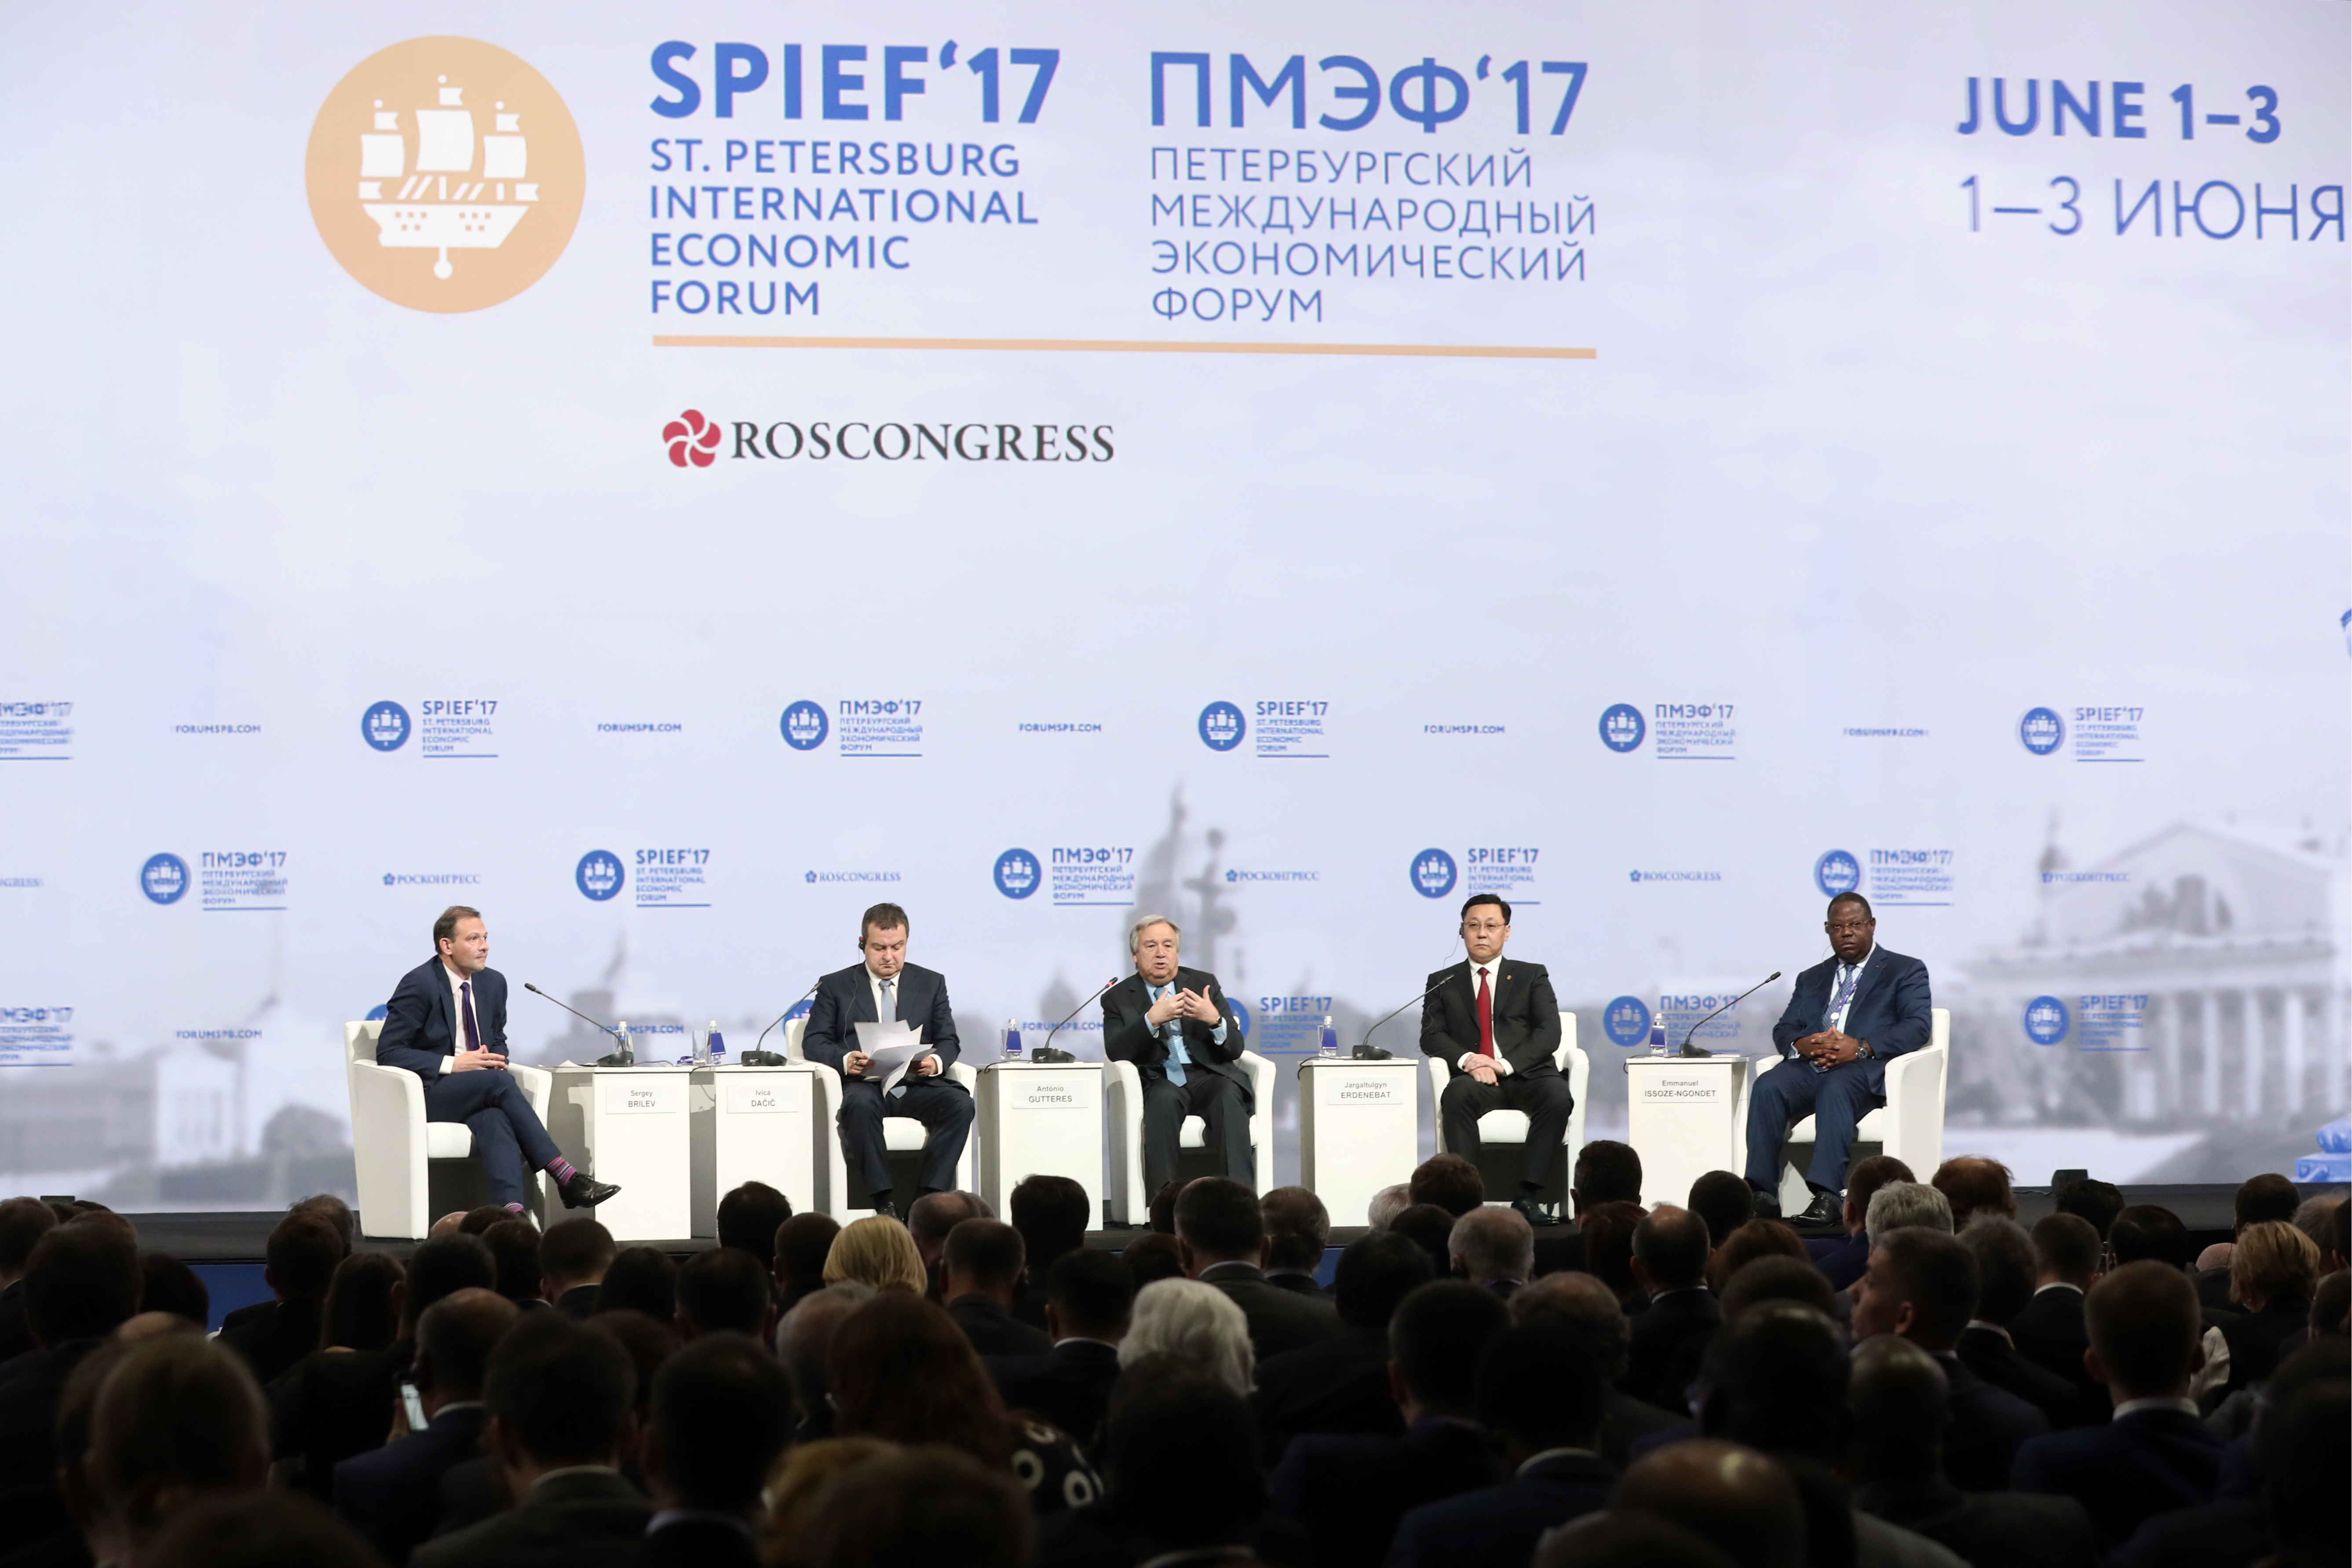 Foreign Guests' Speeches at the Forum Opening